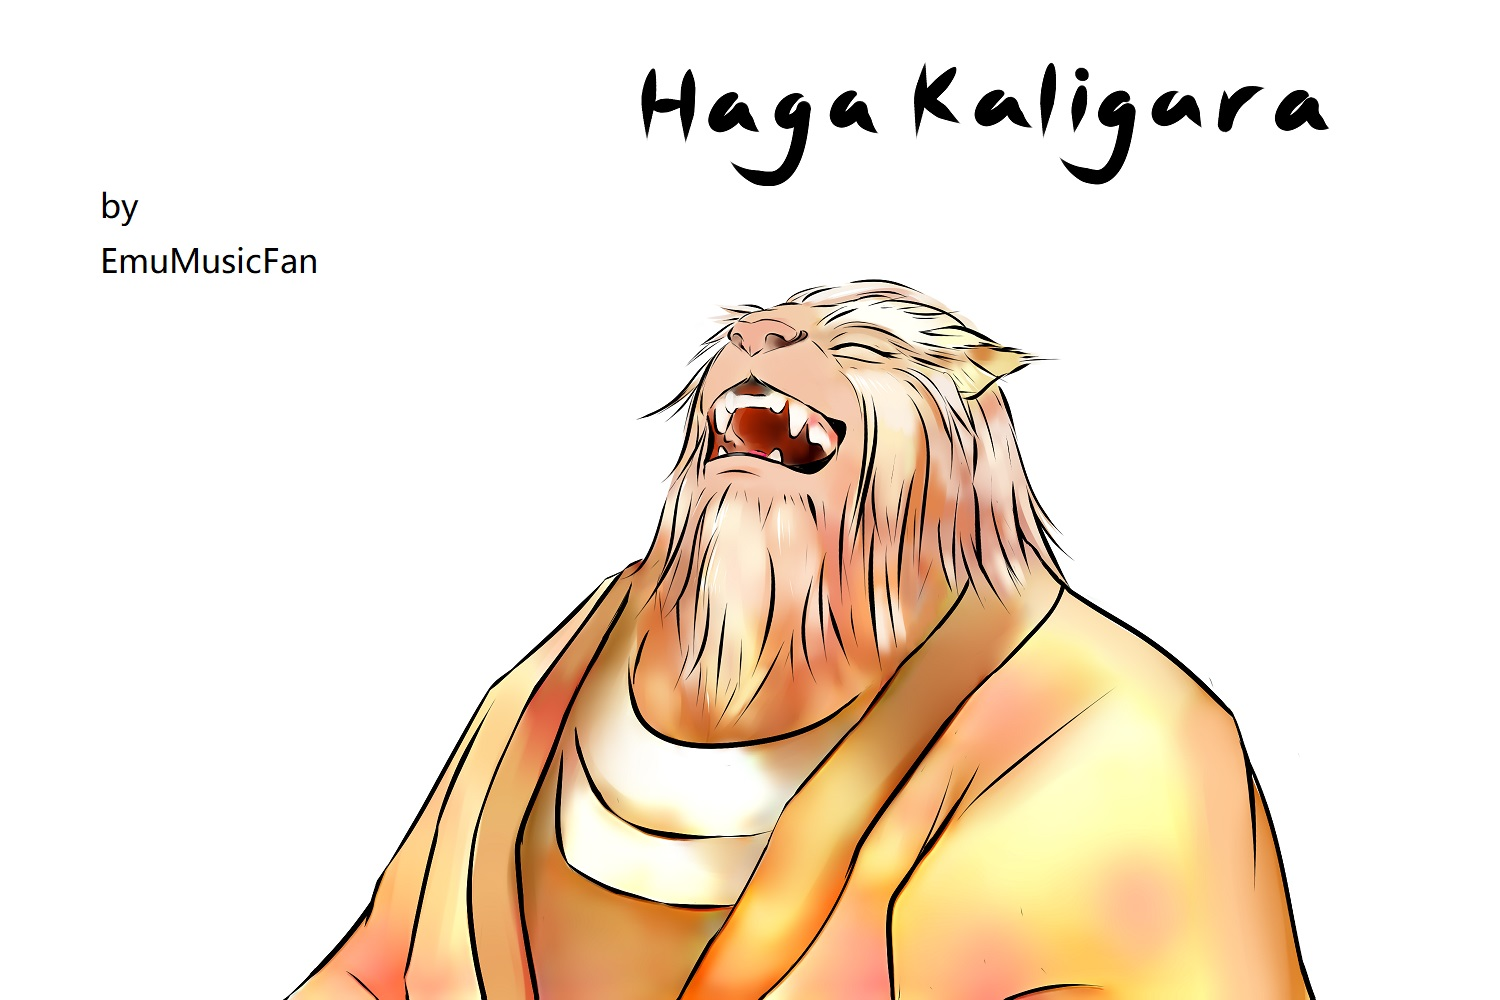 HagaKaligara_laugh.jpg